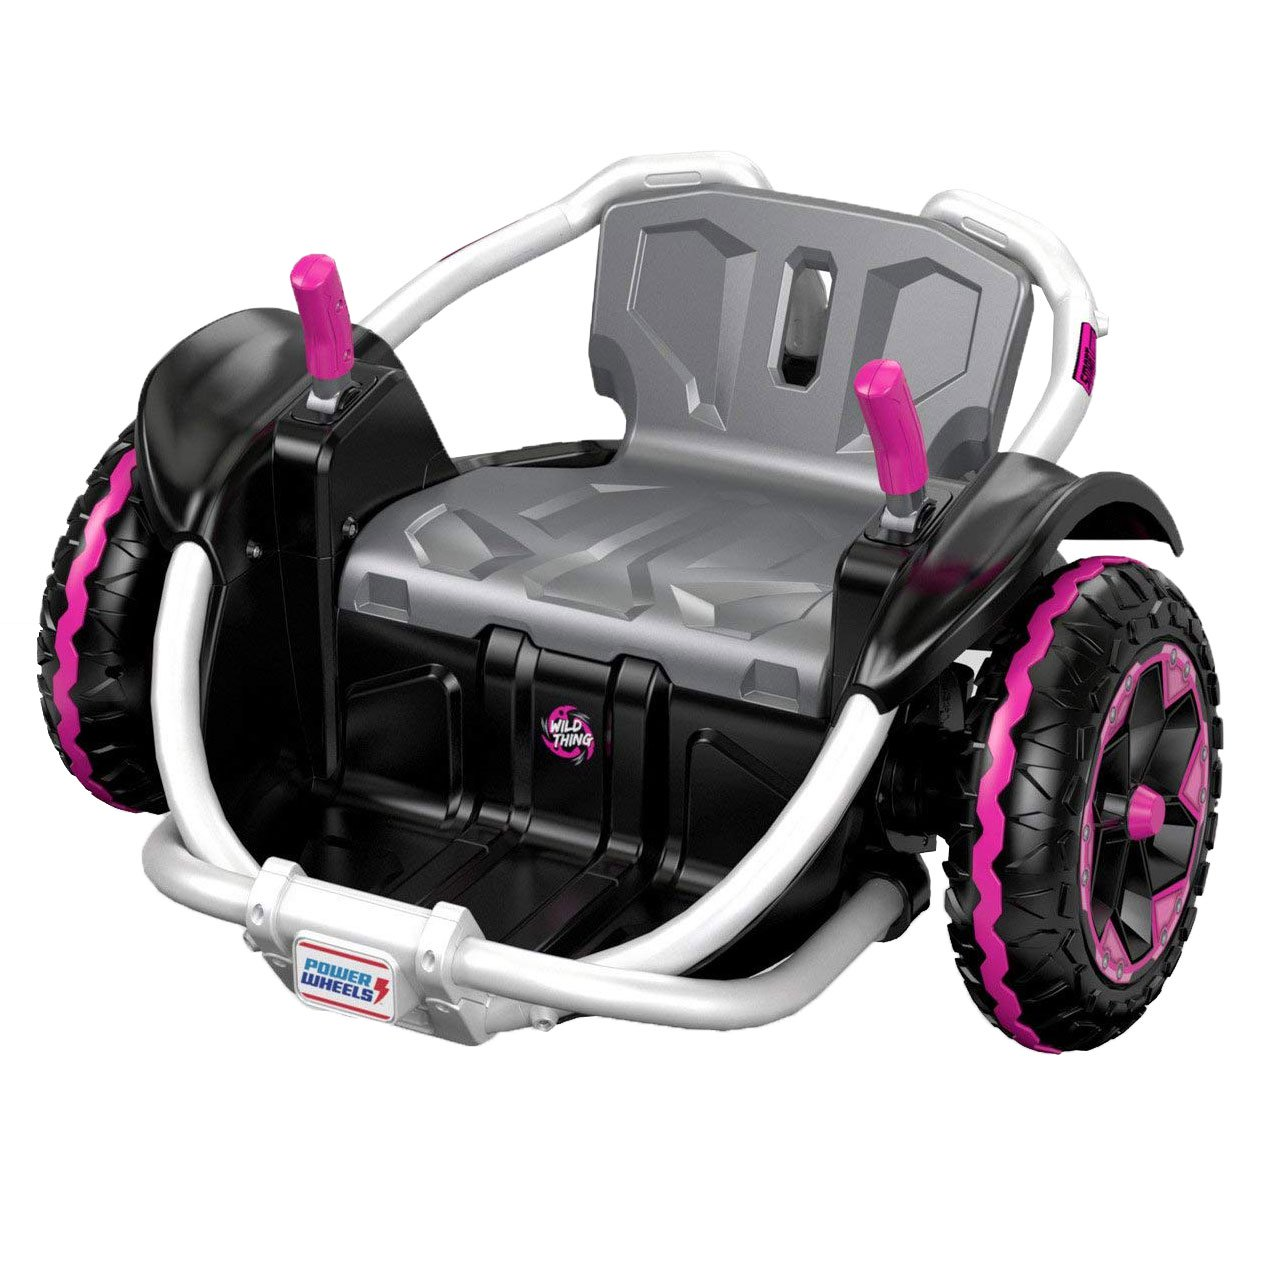 Power Wheels Wild Thing 12V Kids Ride-On Vehicle, Pink